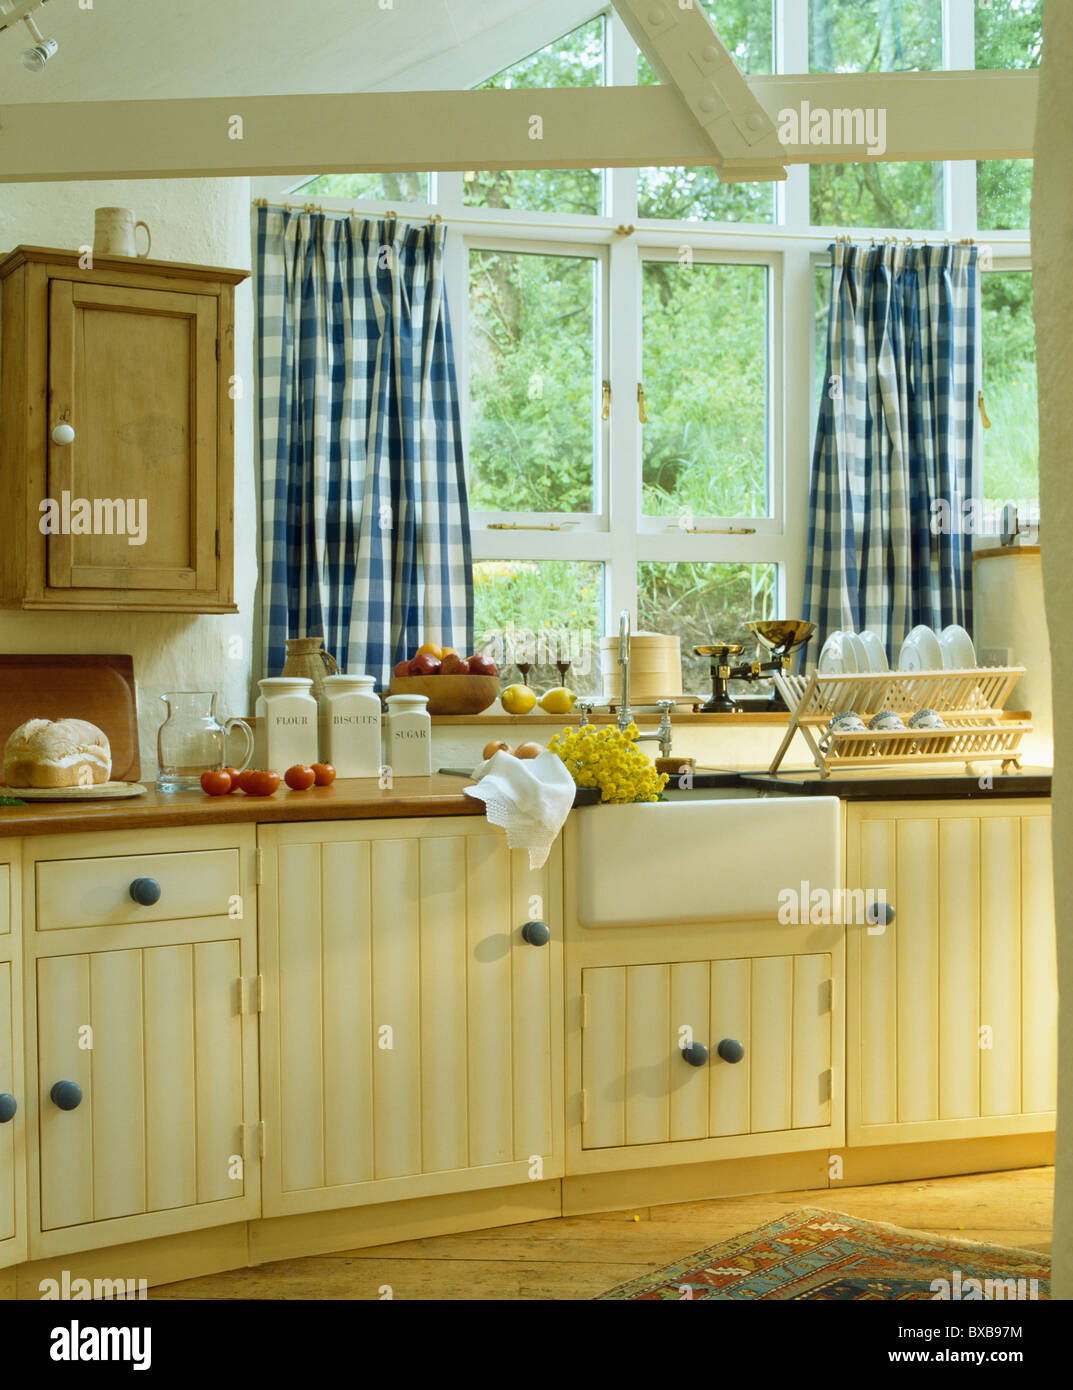 Kitchen Curtains For Yellow Walls Blue 43white Checked Curtains On Window Above Sink In